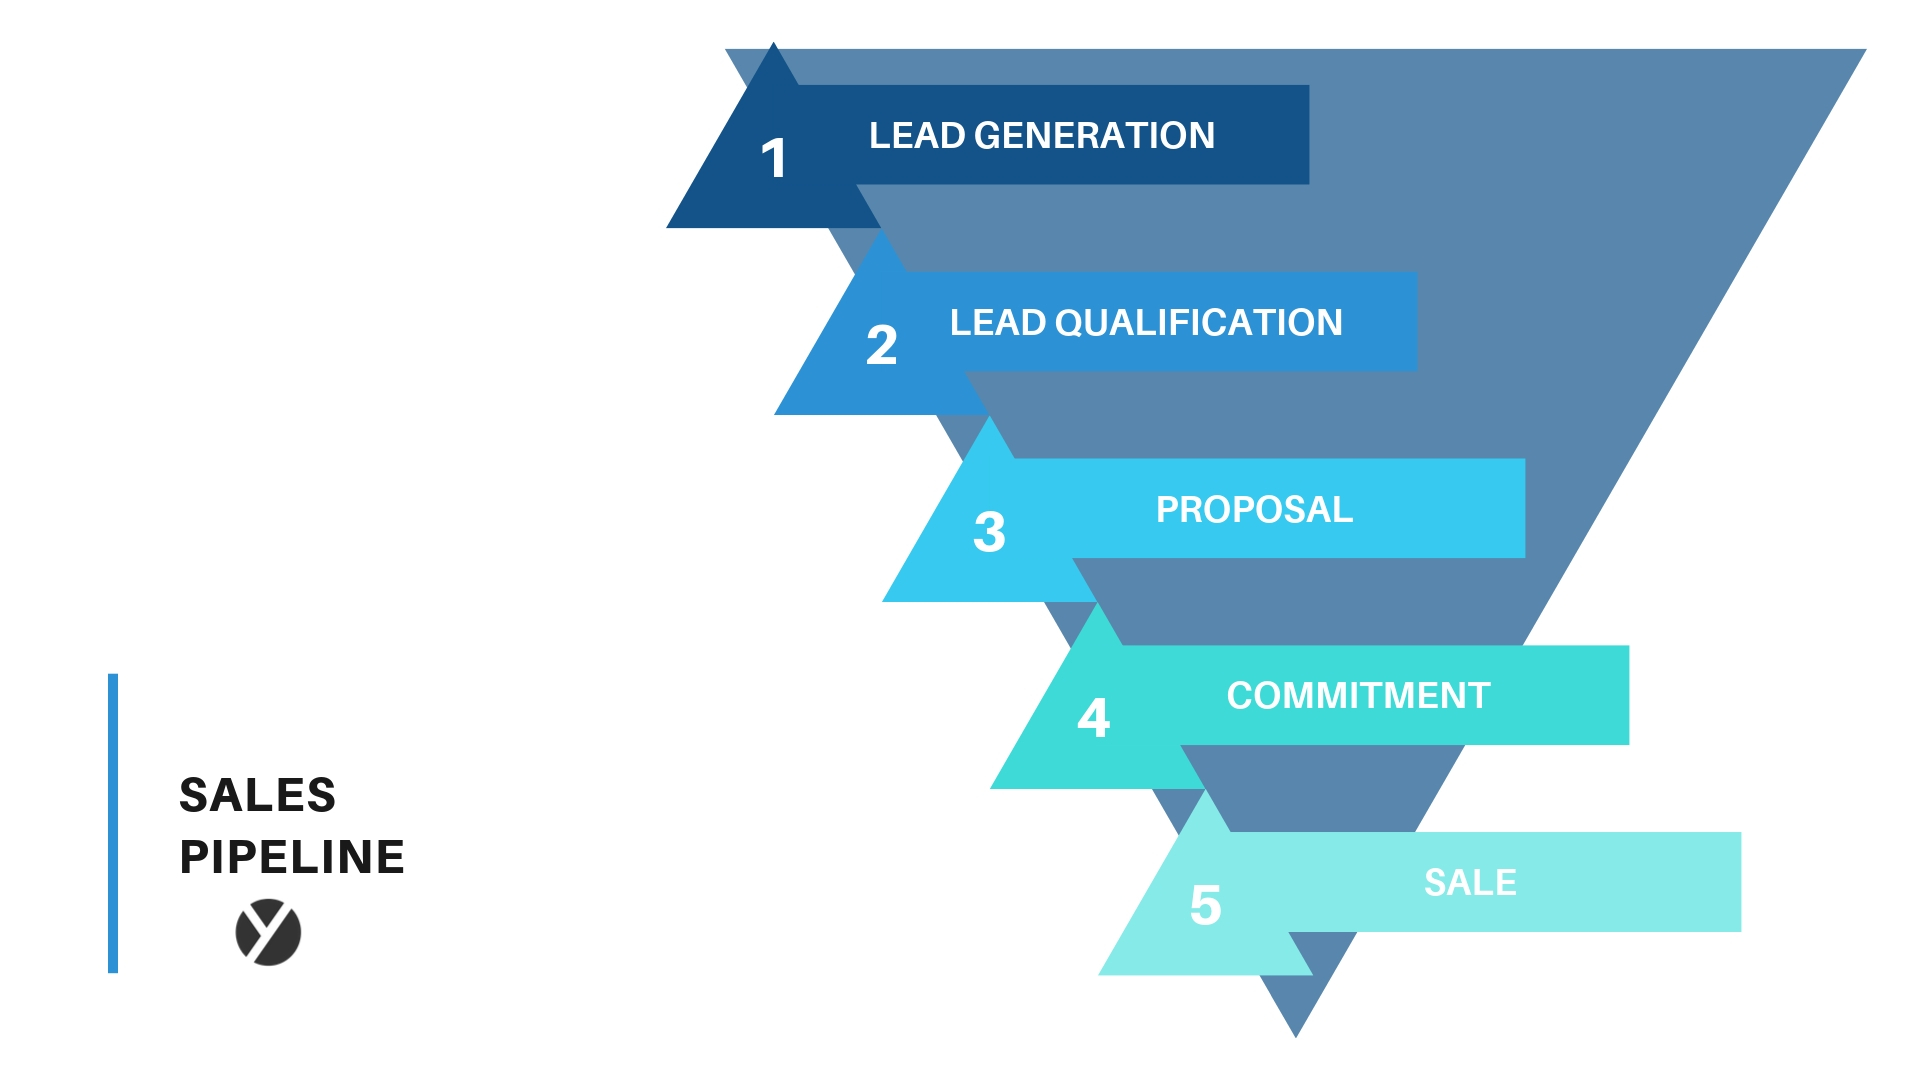 To plan your next sales quarter, layout your pipeline and see where your top opportunities lie.